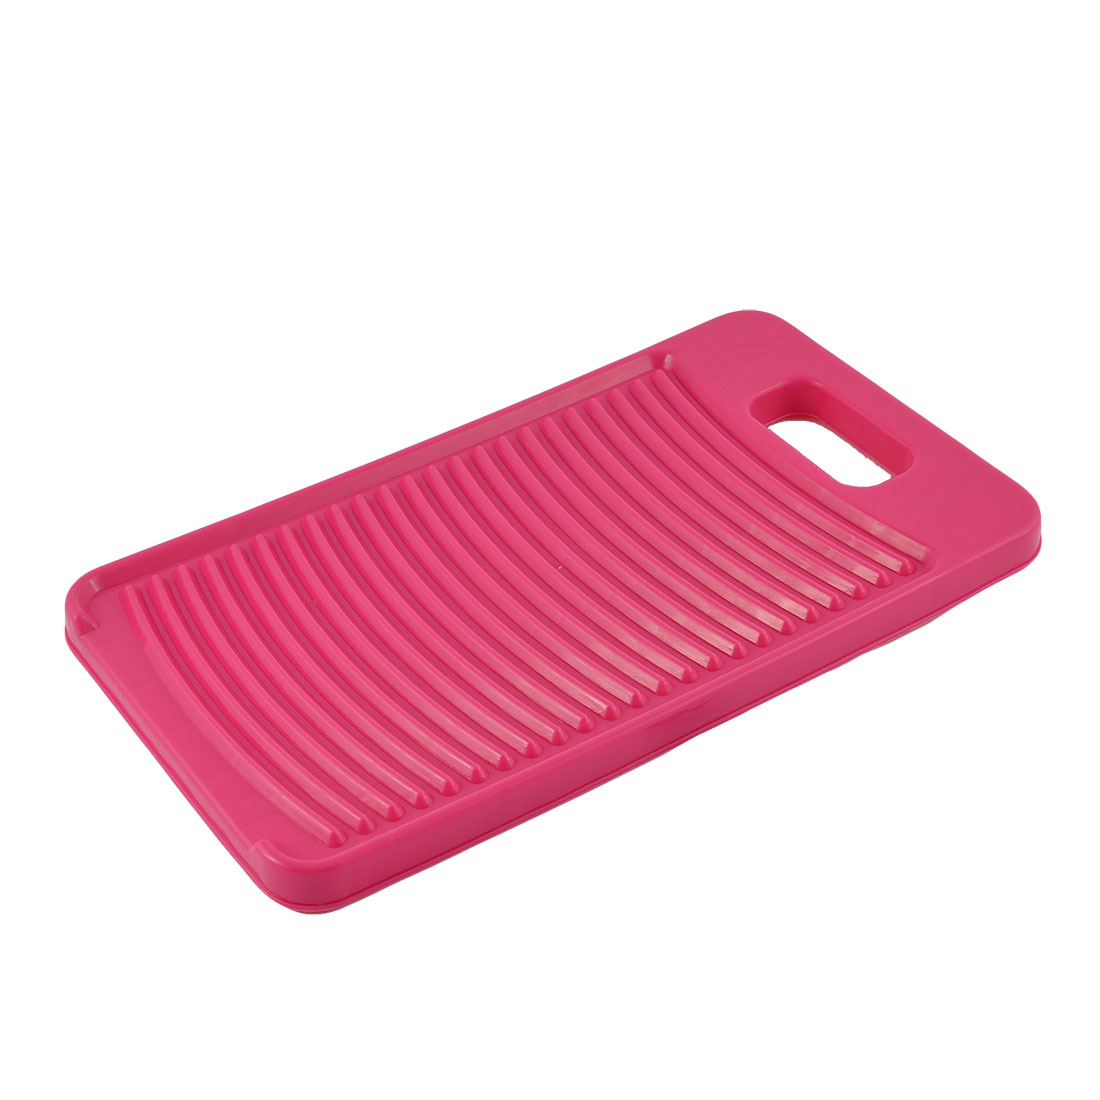 Home Laundry Plastic Thicken Rectangle Antislip Shirts Clothes Clean Washing Board Washboard Fuchsia